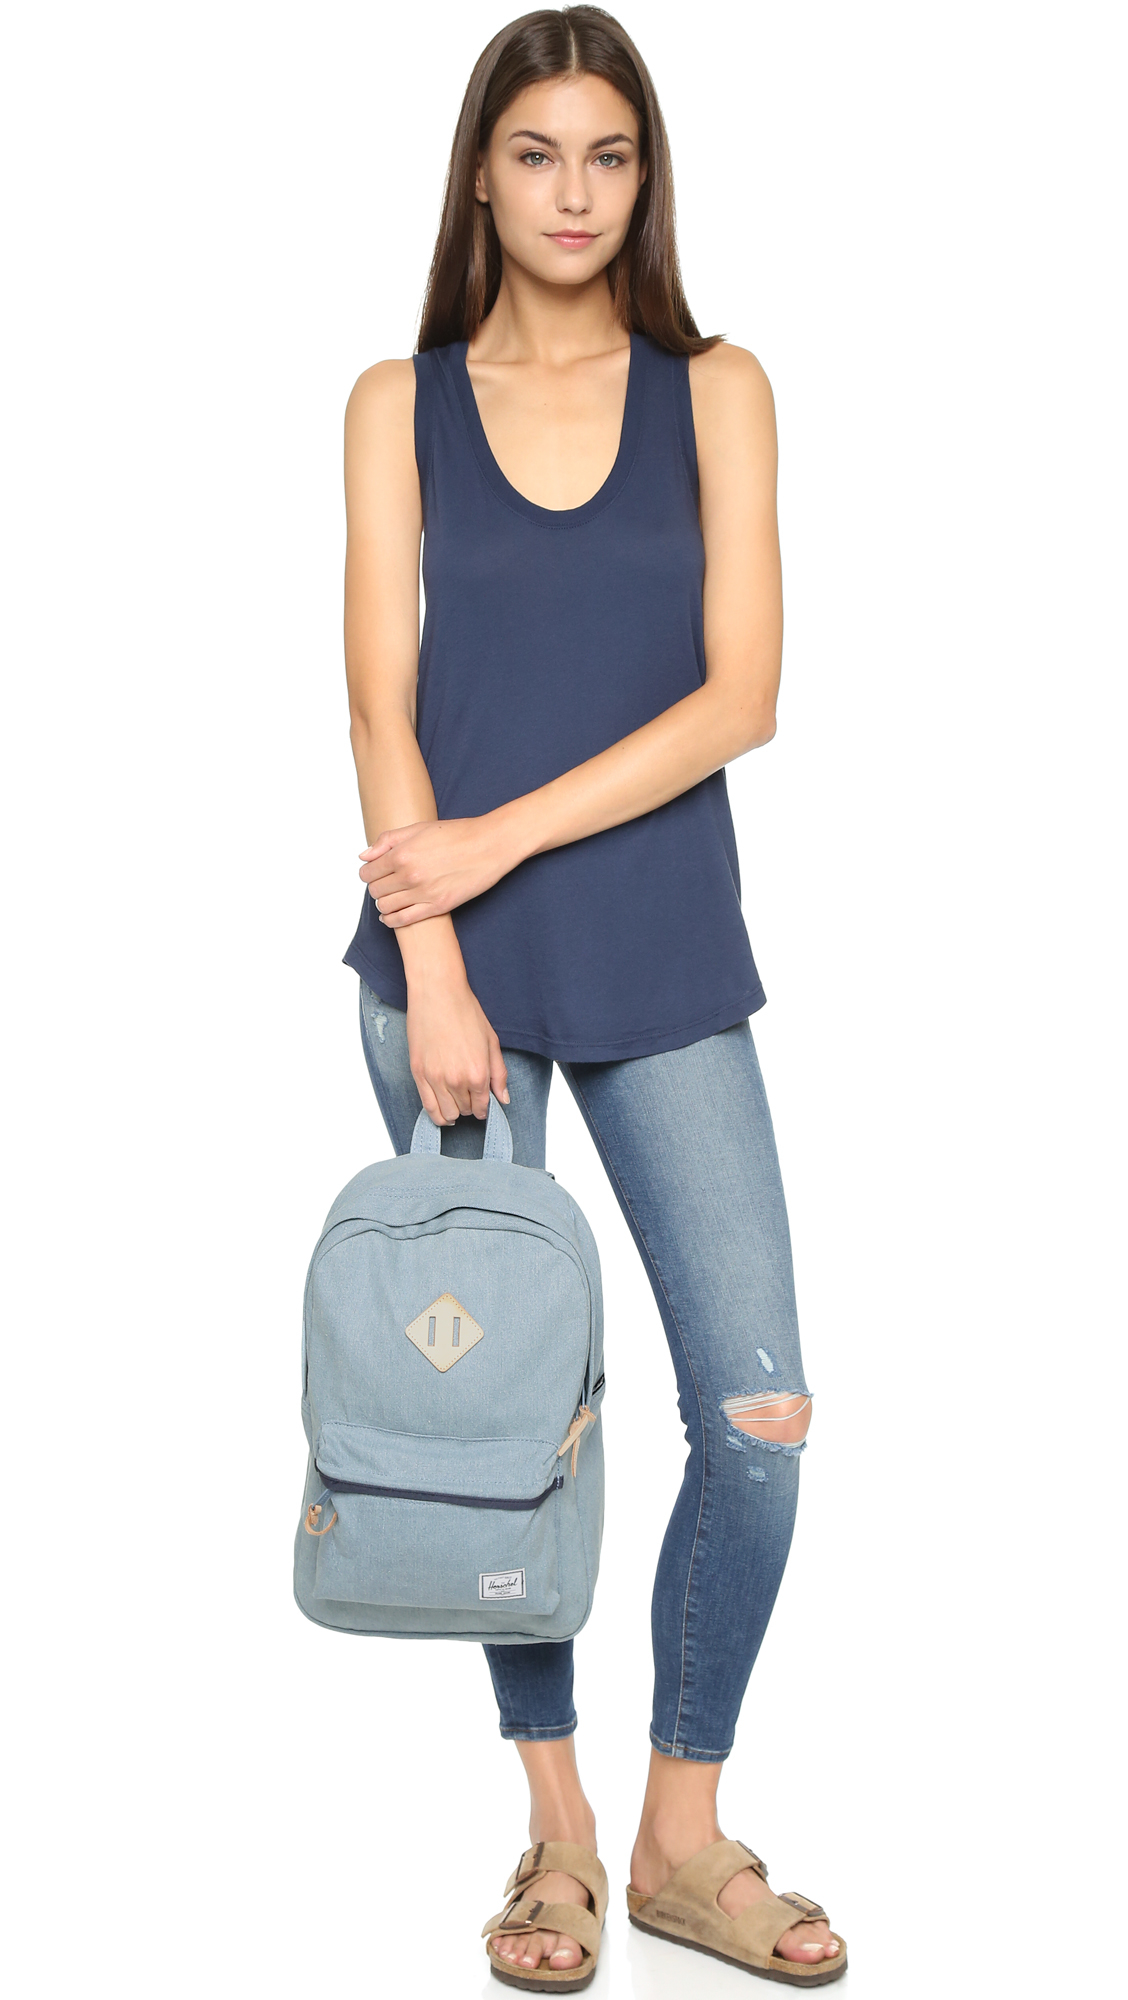 Lyst - Herschel Supply Co. Heritage Mid Volume Backpack - Denim in Blue ba55816e9db31